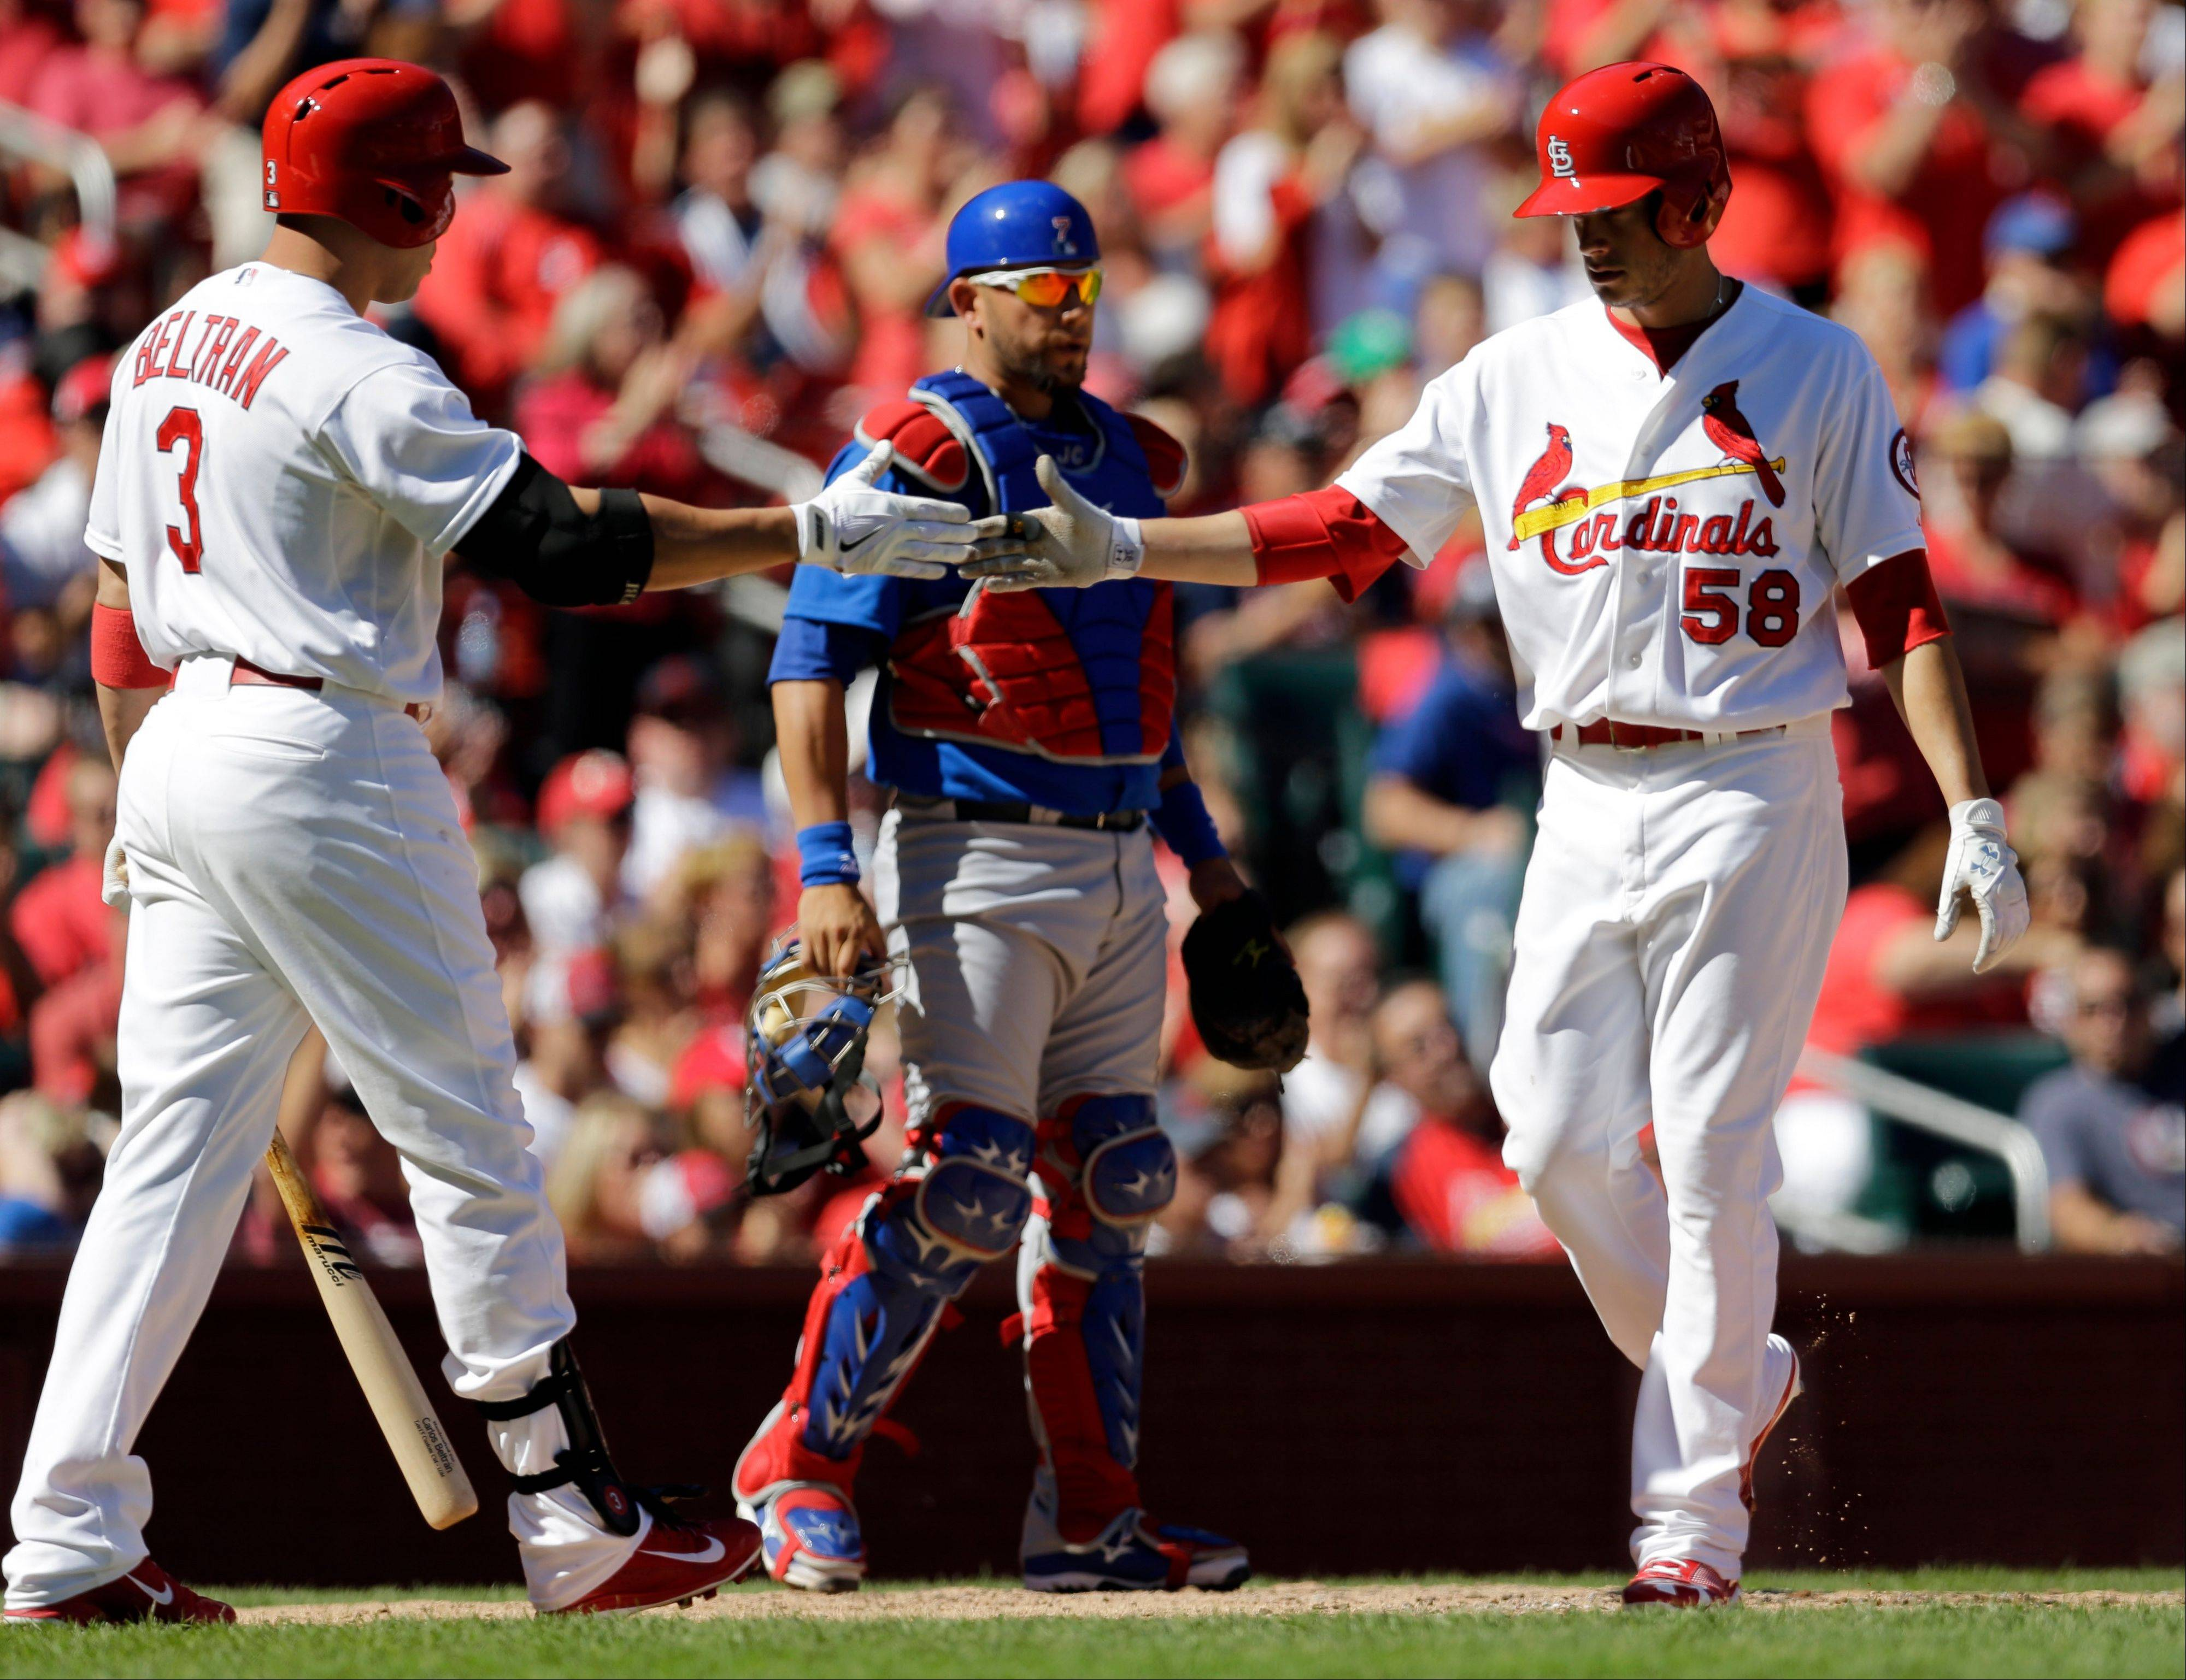 St. Louis Cardinals' Joe Kelly, right, is congratulated by teammate Carlos Beltran after scoring as Chicago Cubs catcher J.C. Boscan, center, looks on during the third inning of a baseball game on Sunday, Sept. 29, 2013, in St. Louis.